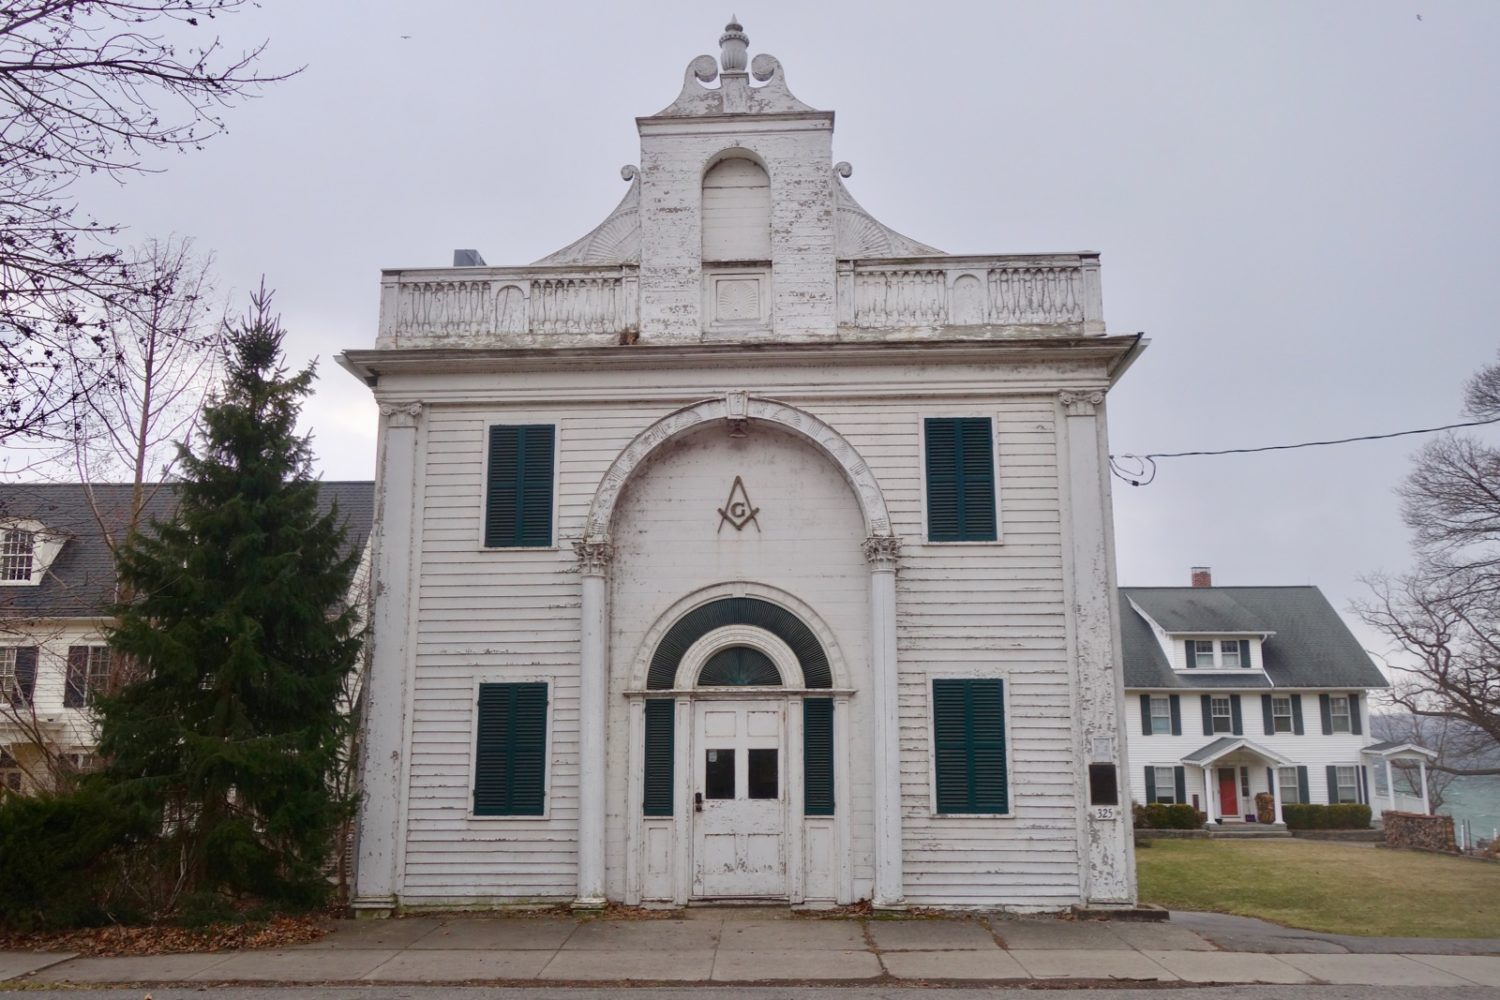 Masonic building on Main Street in Aurora, New York